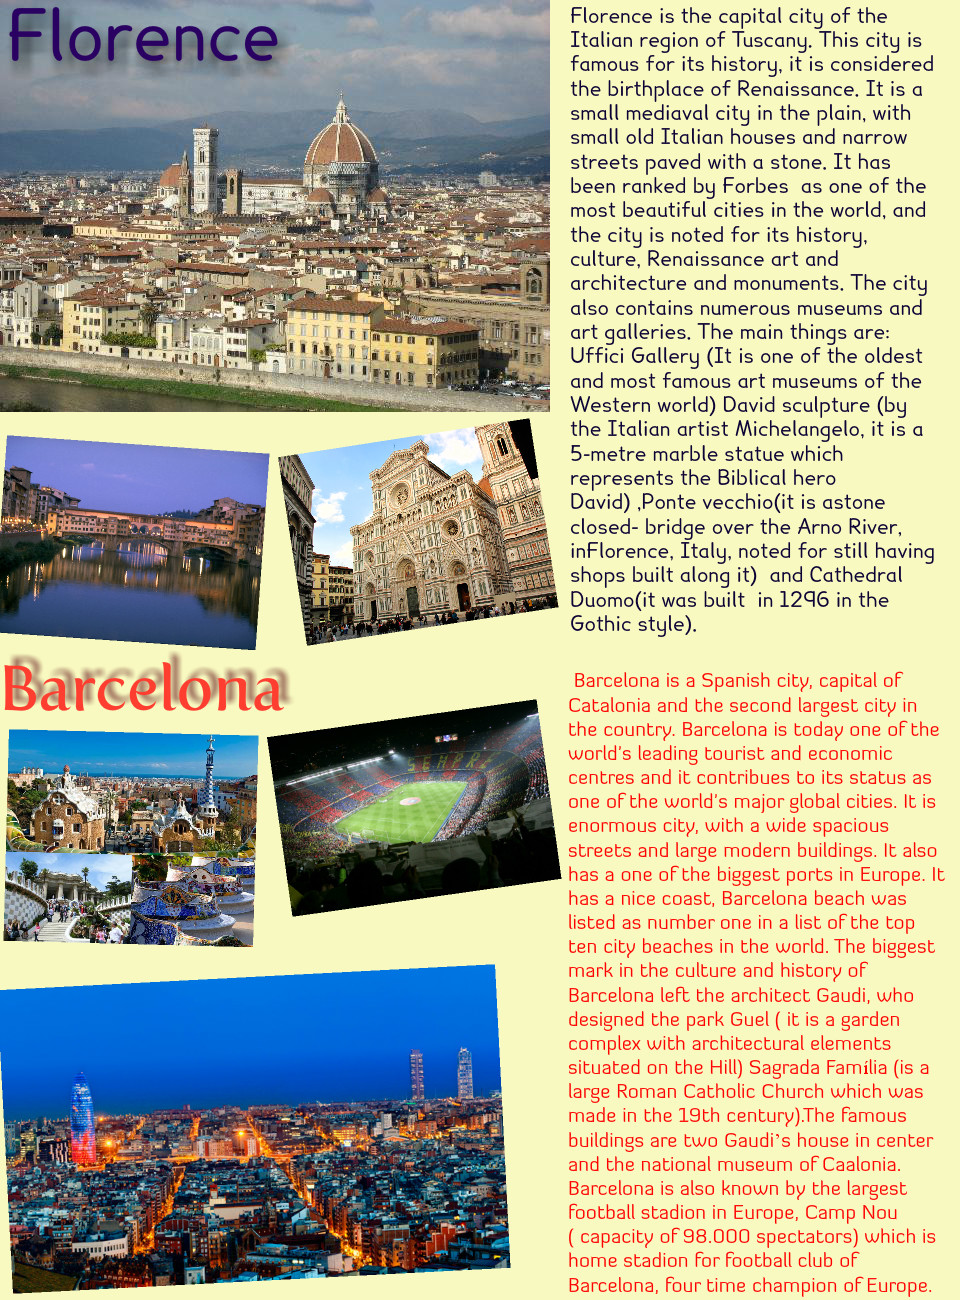 Barcelona and Florence